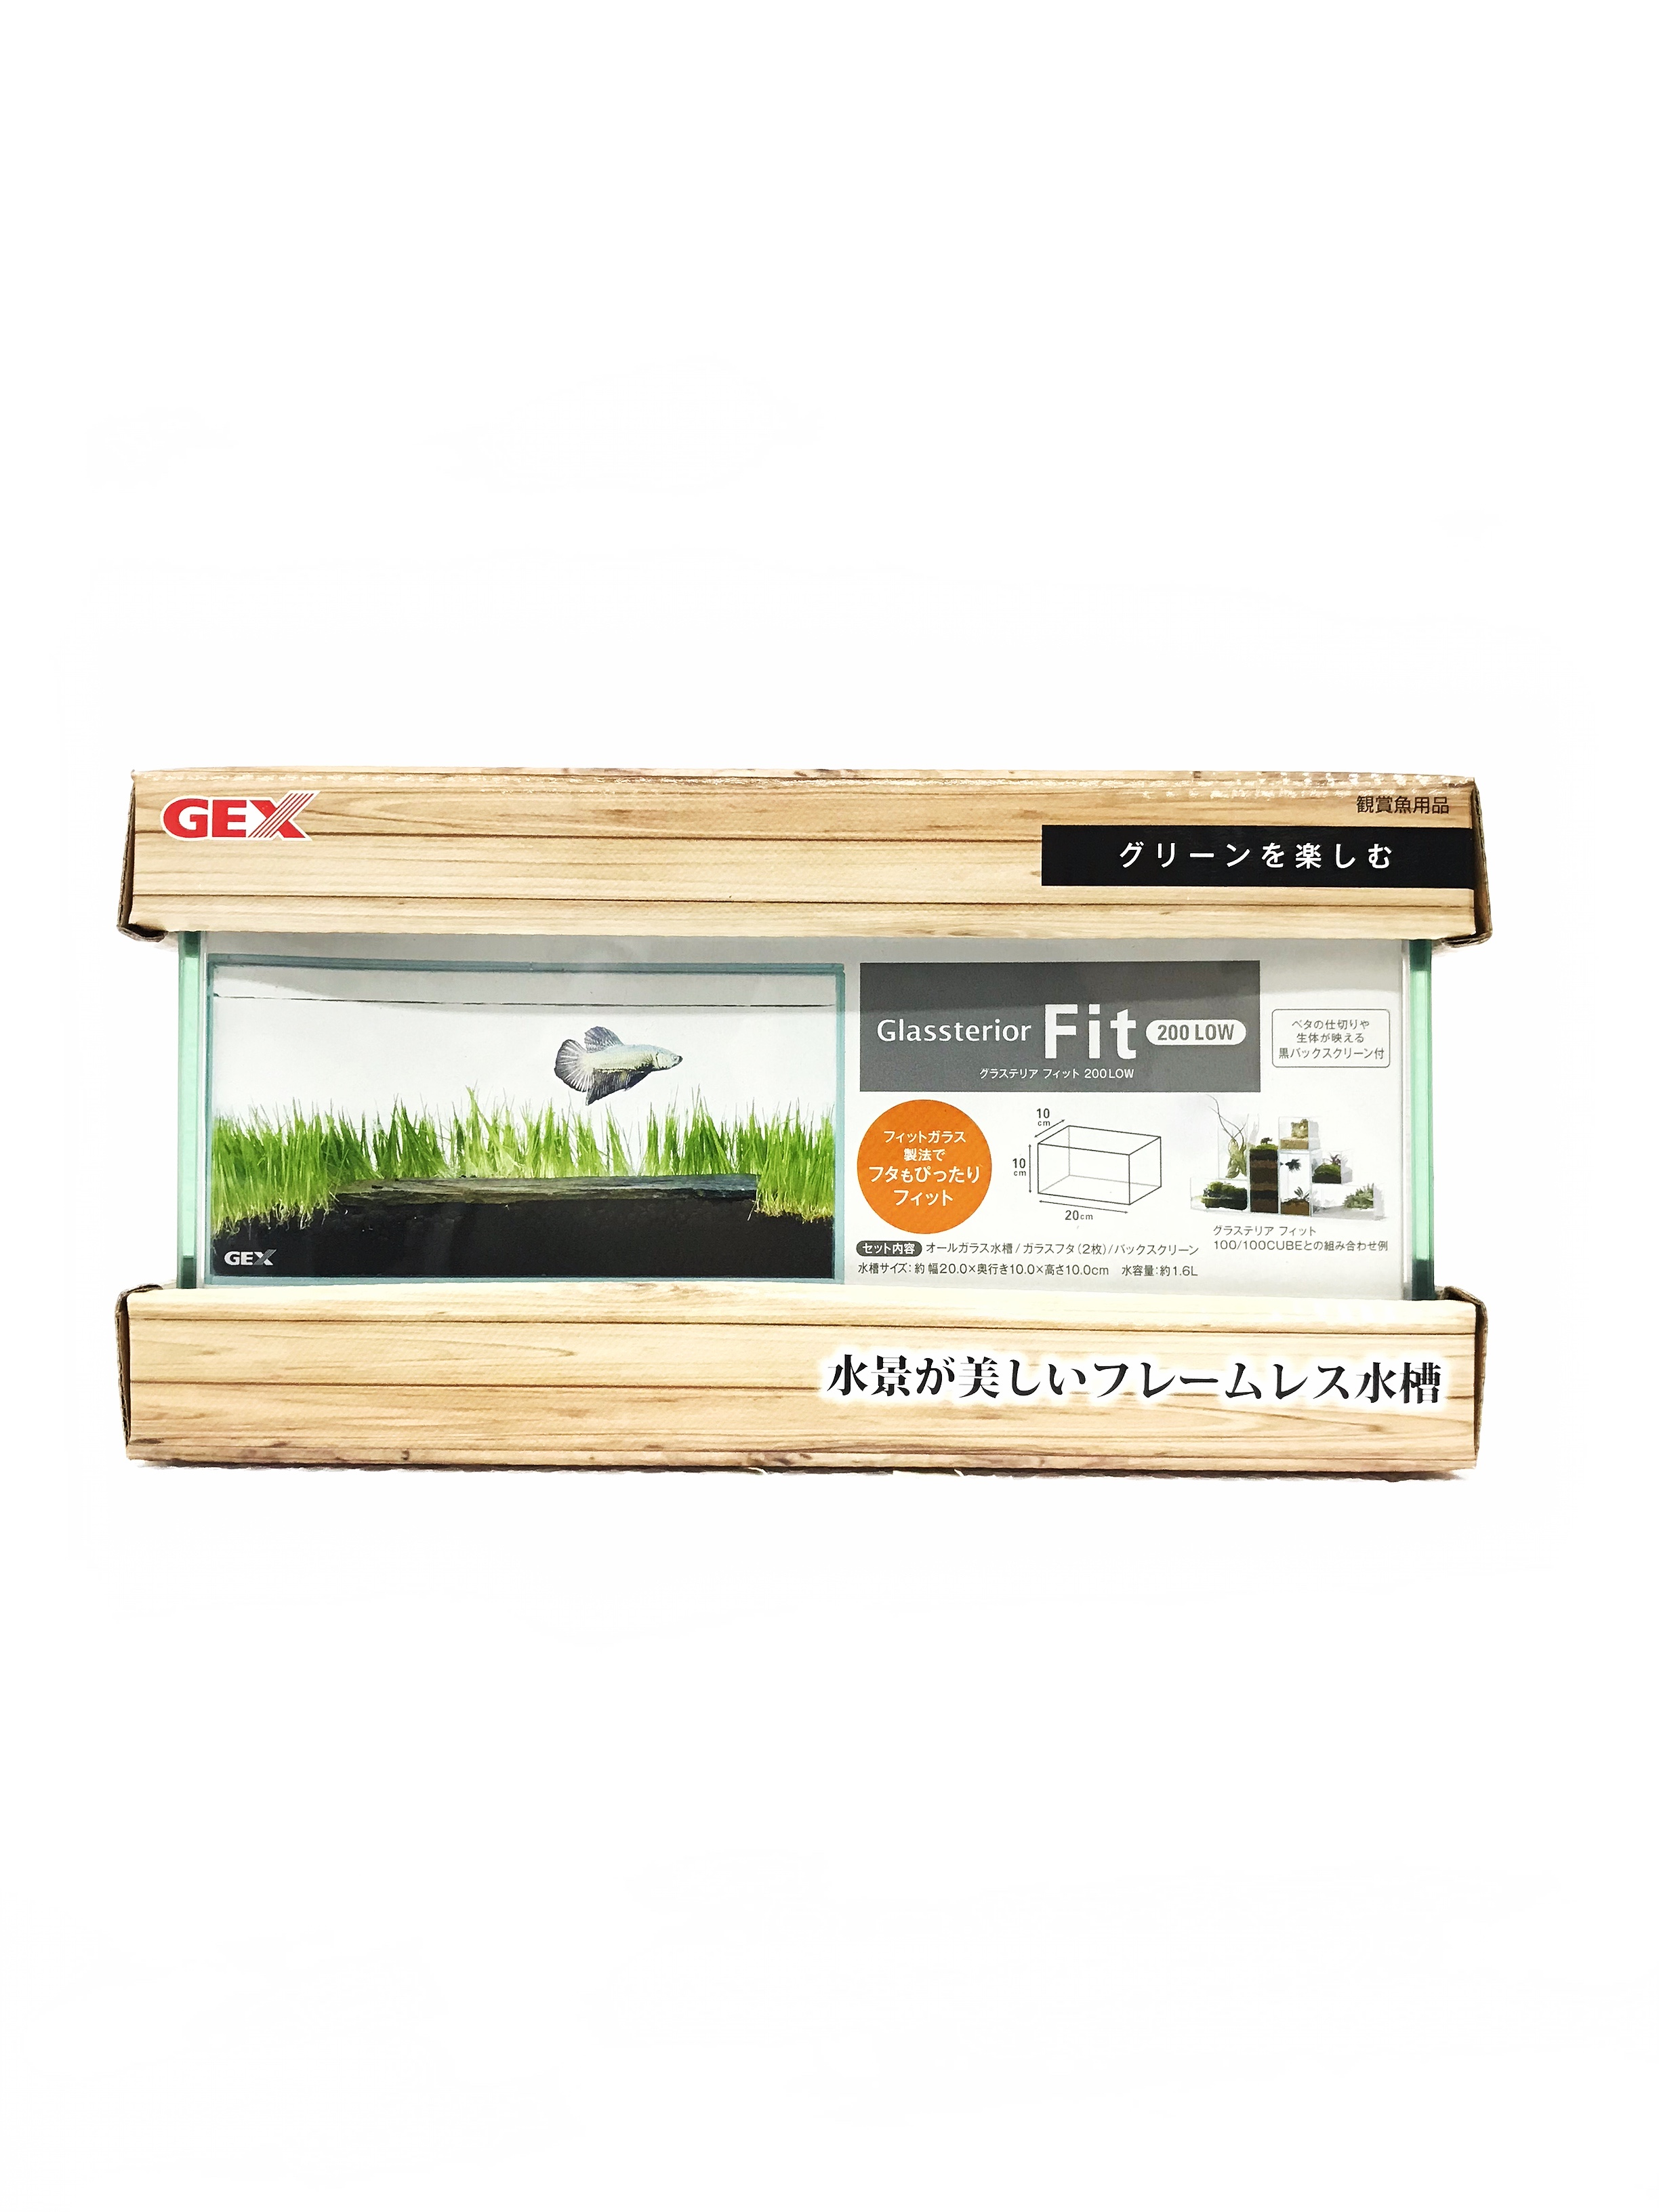 Gex Glassteria Fit 200 Low (8625)